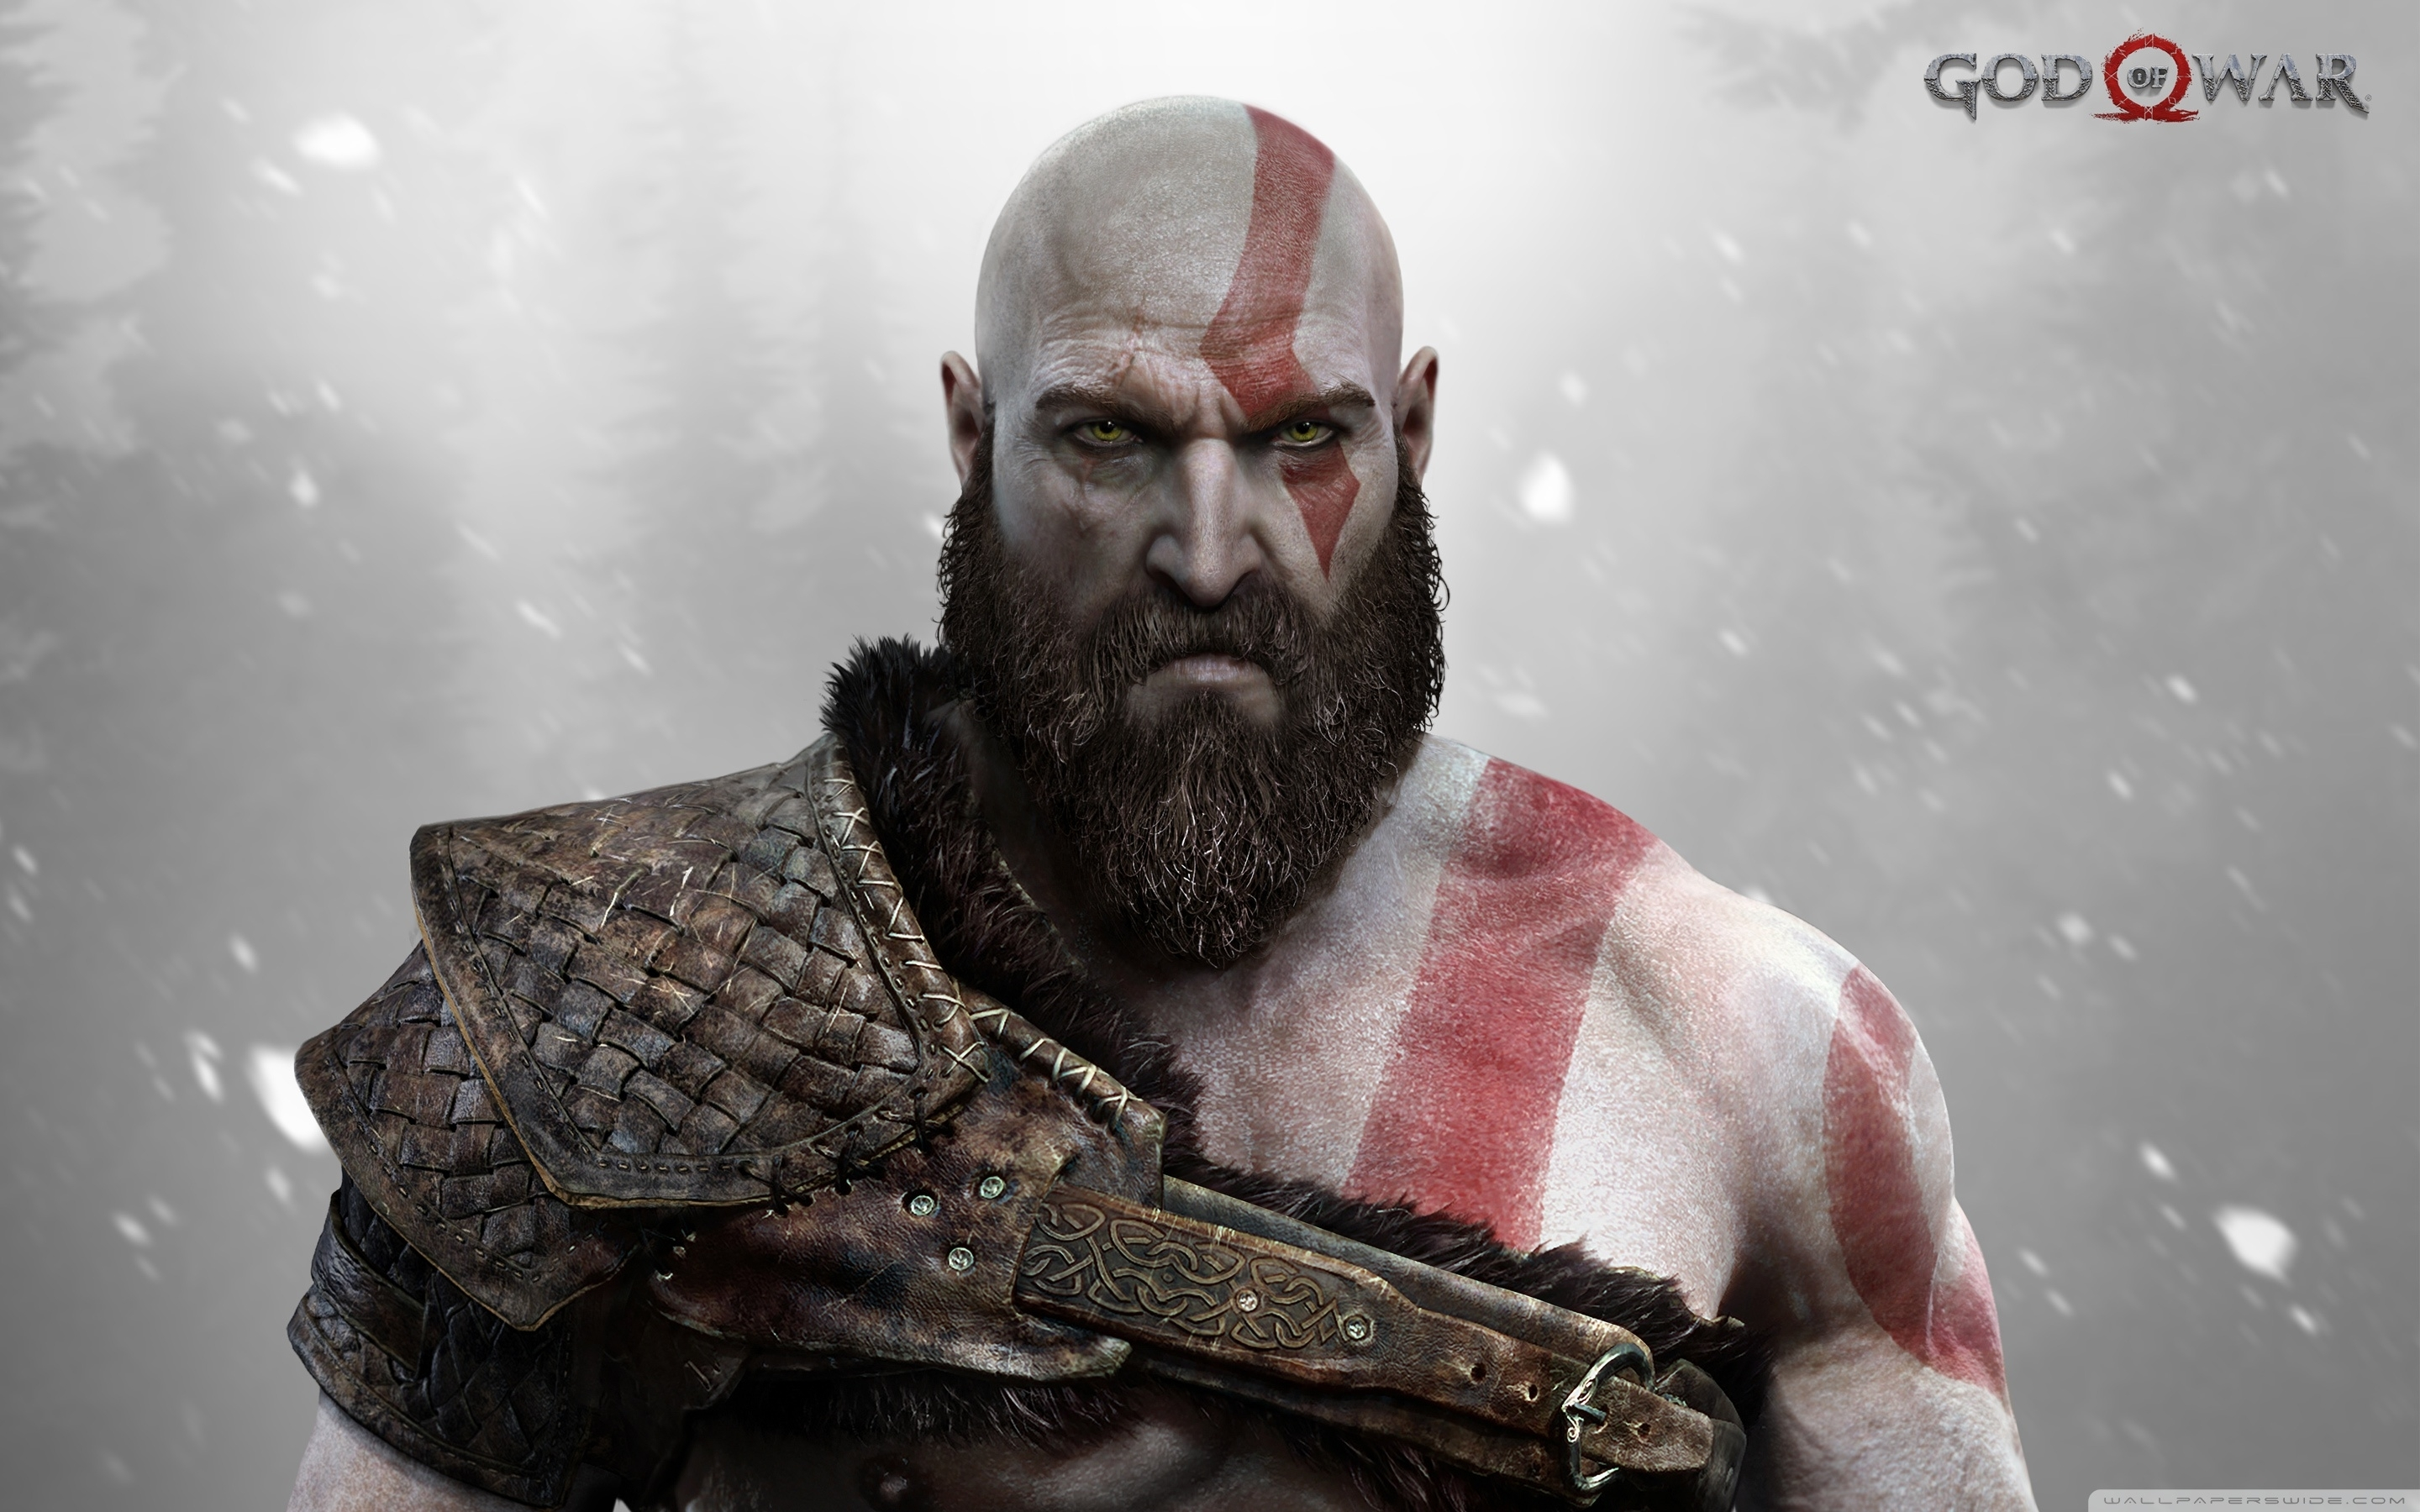 10 New God Of War Hd FULL HD 1920×1080 For PC Background